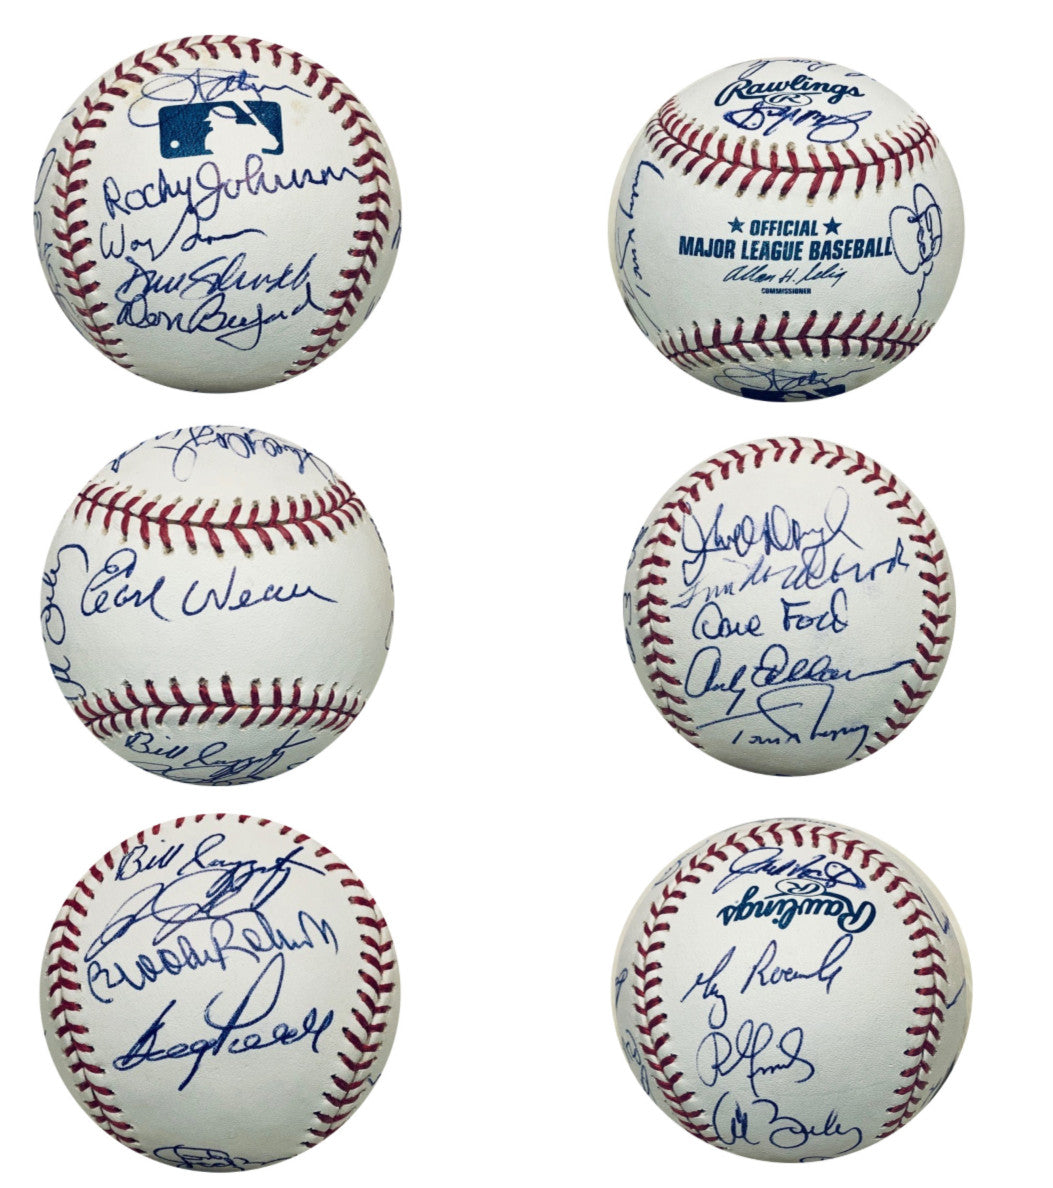 Baltimore Orioles Autographed Hall of Fame HOF Signed Baseball Earl Weaver Brooks Robinson Jim Palmer + 16 Signatures JSA COA With UV Display Case-Powers Sports Memorabilia